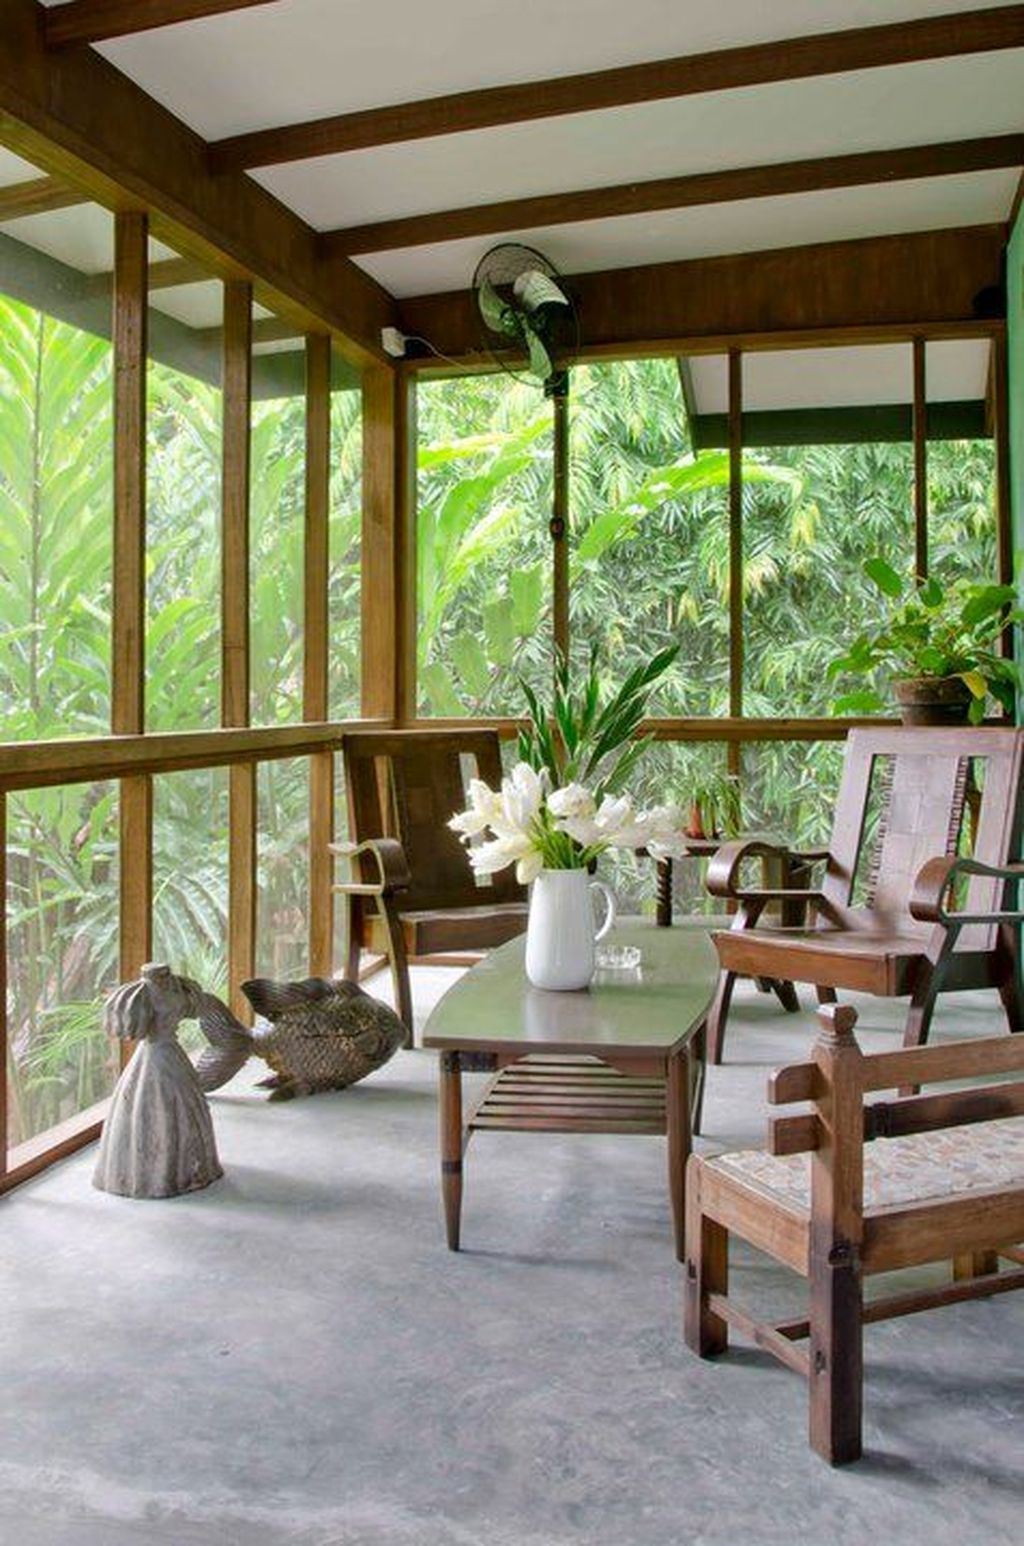 36 Gorgeous Modern Sunroom Design Ideas To Relax In The Summer Sweetyhomee Filipino Interior Design Modern Filipino House Home Interior Design